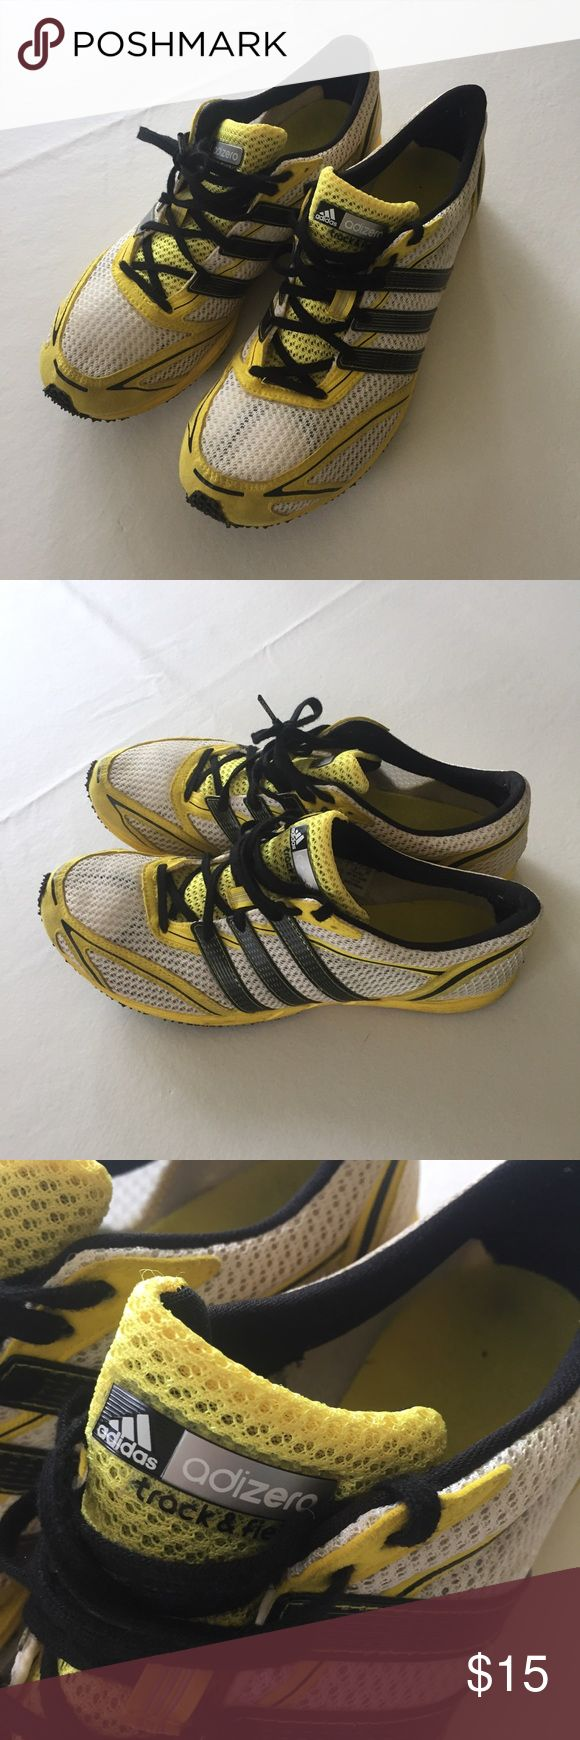 Adidas adizero track and field spikes Yellow white and black ultra light track spikes in great condition. Fits Men's 7 or women's 8.5/9. adidas Shoes Athletic Shoes